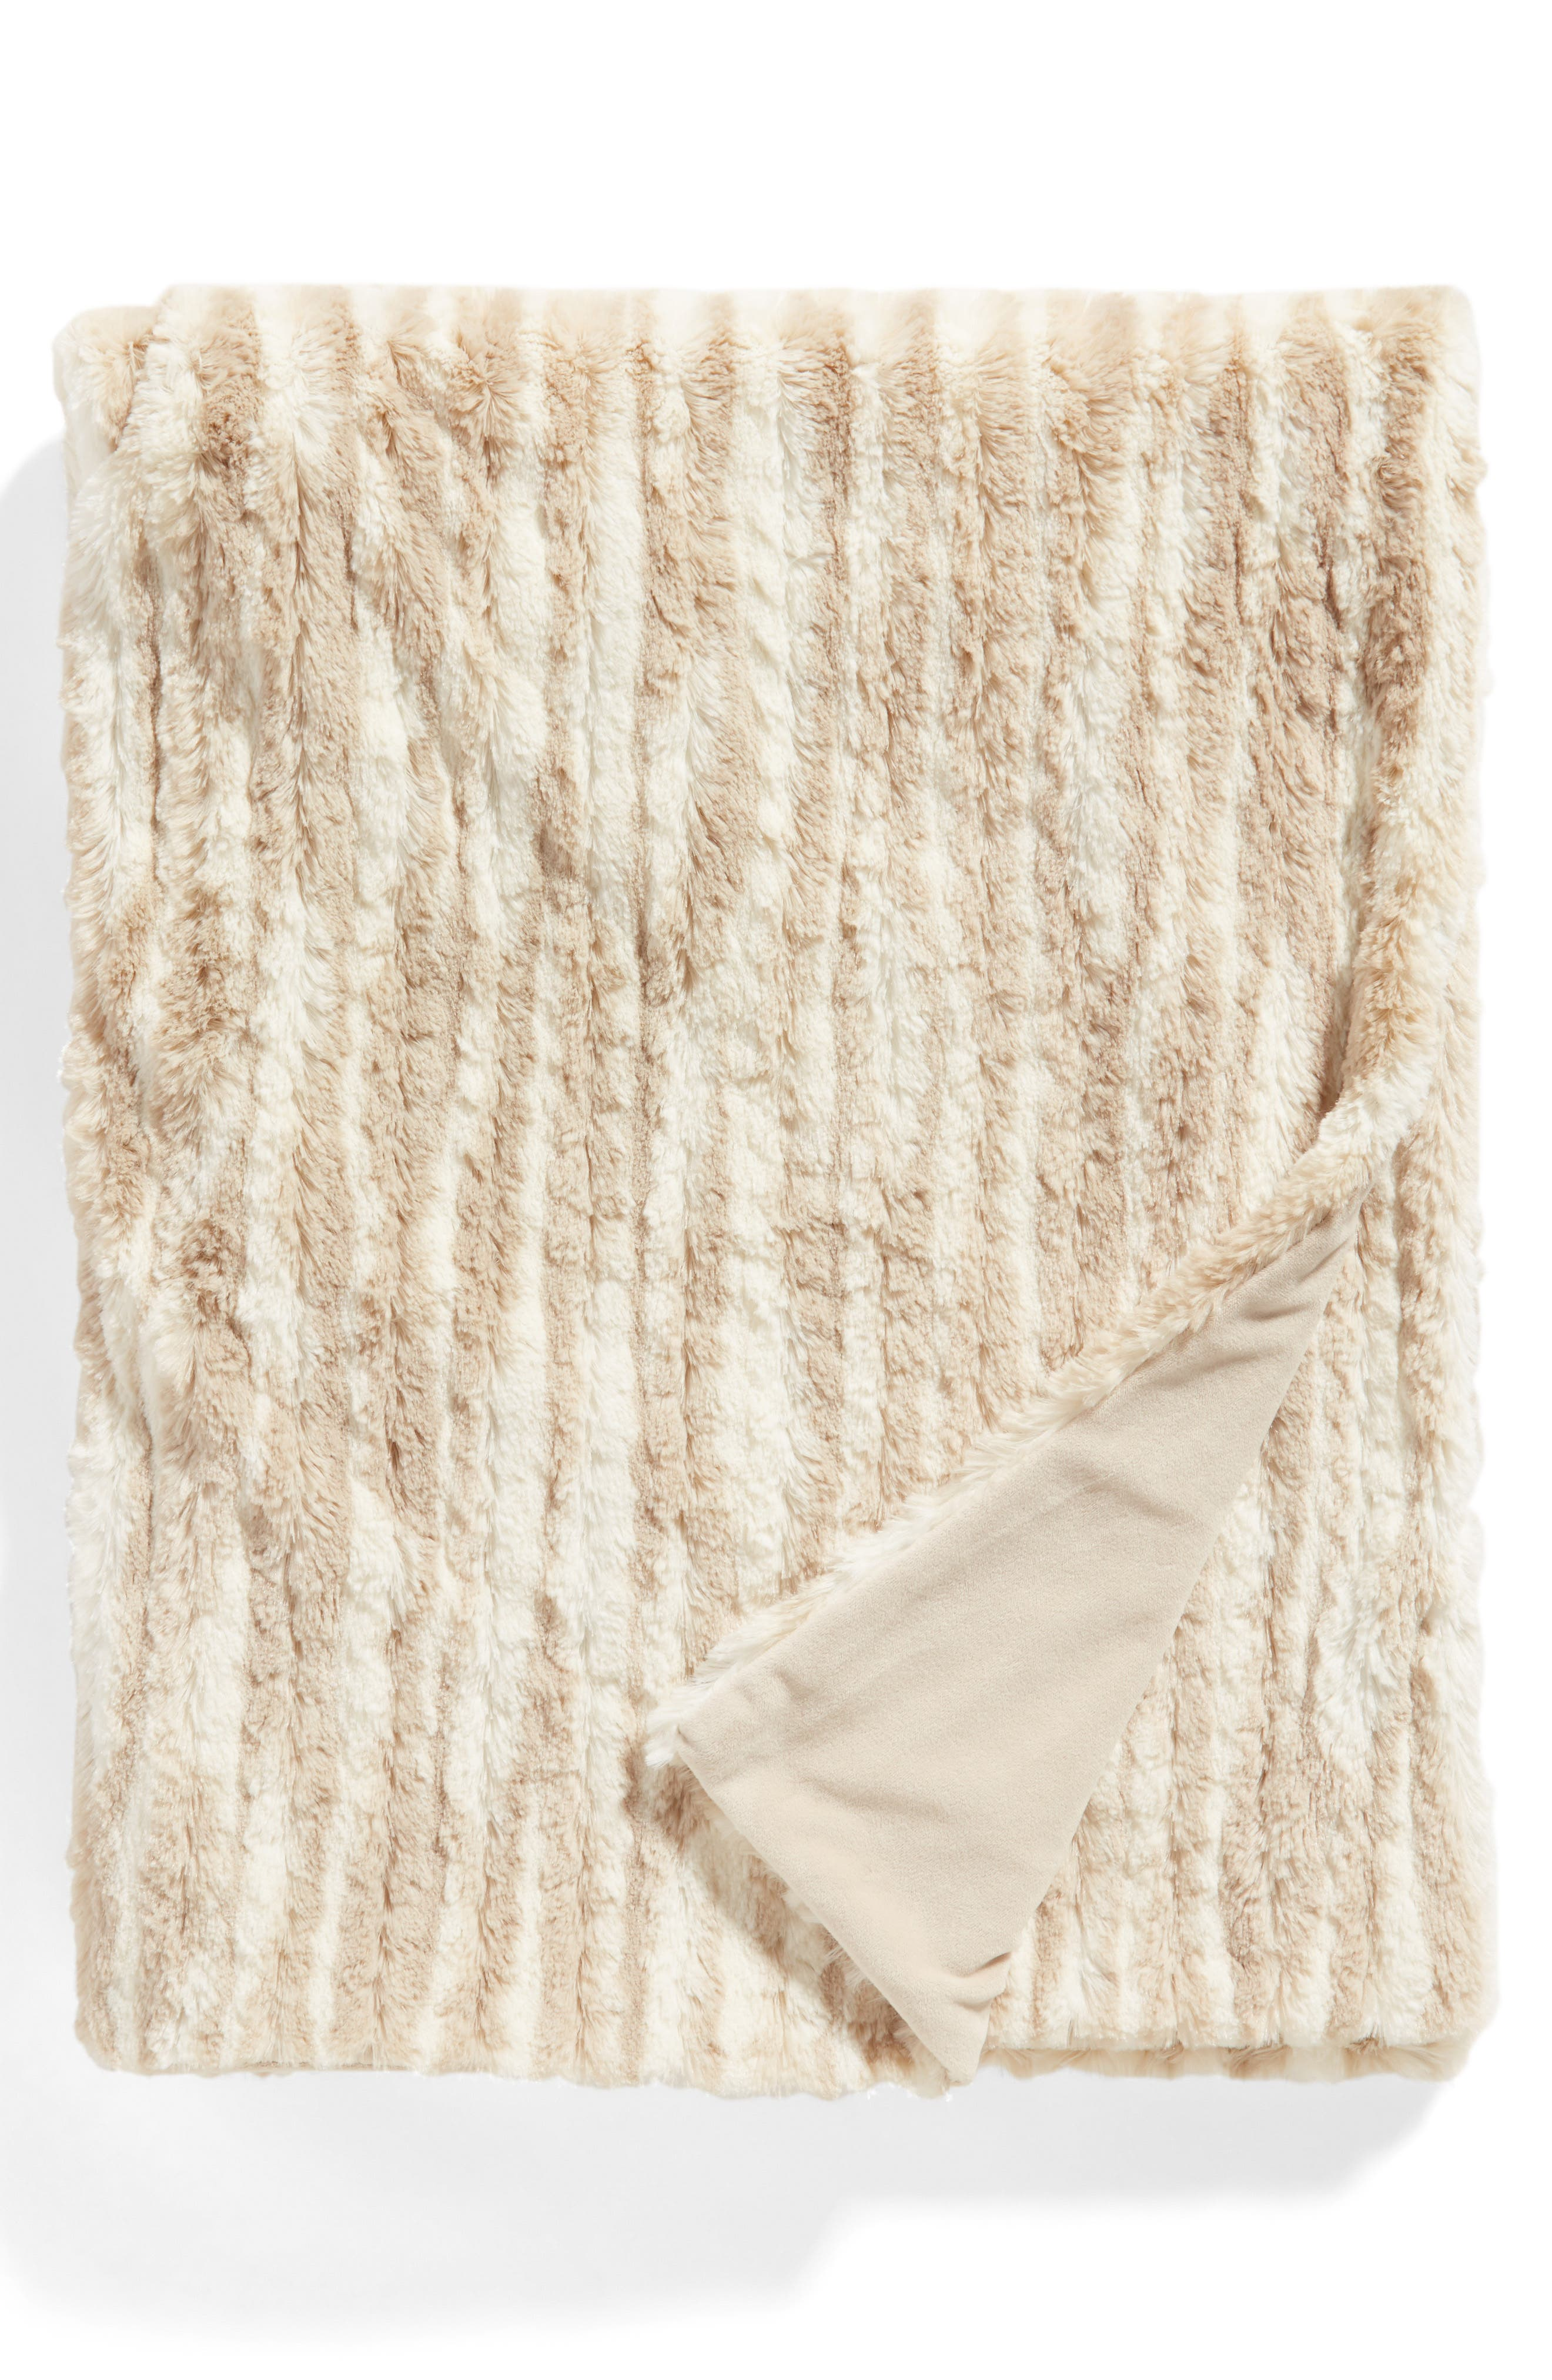 Soft Ribbed Plush Throw,                             Main thumbnail 1, color,                             BEIGE OATMEAL PRINT